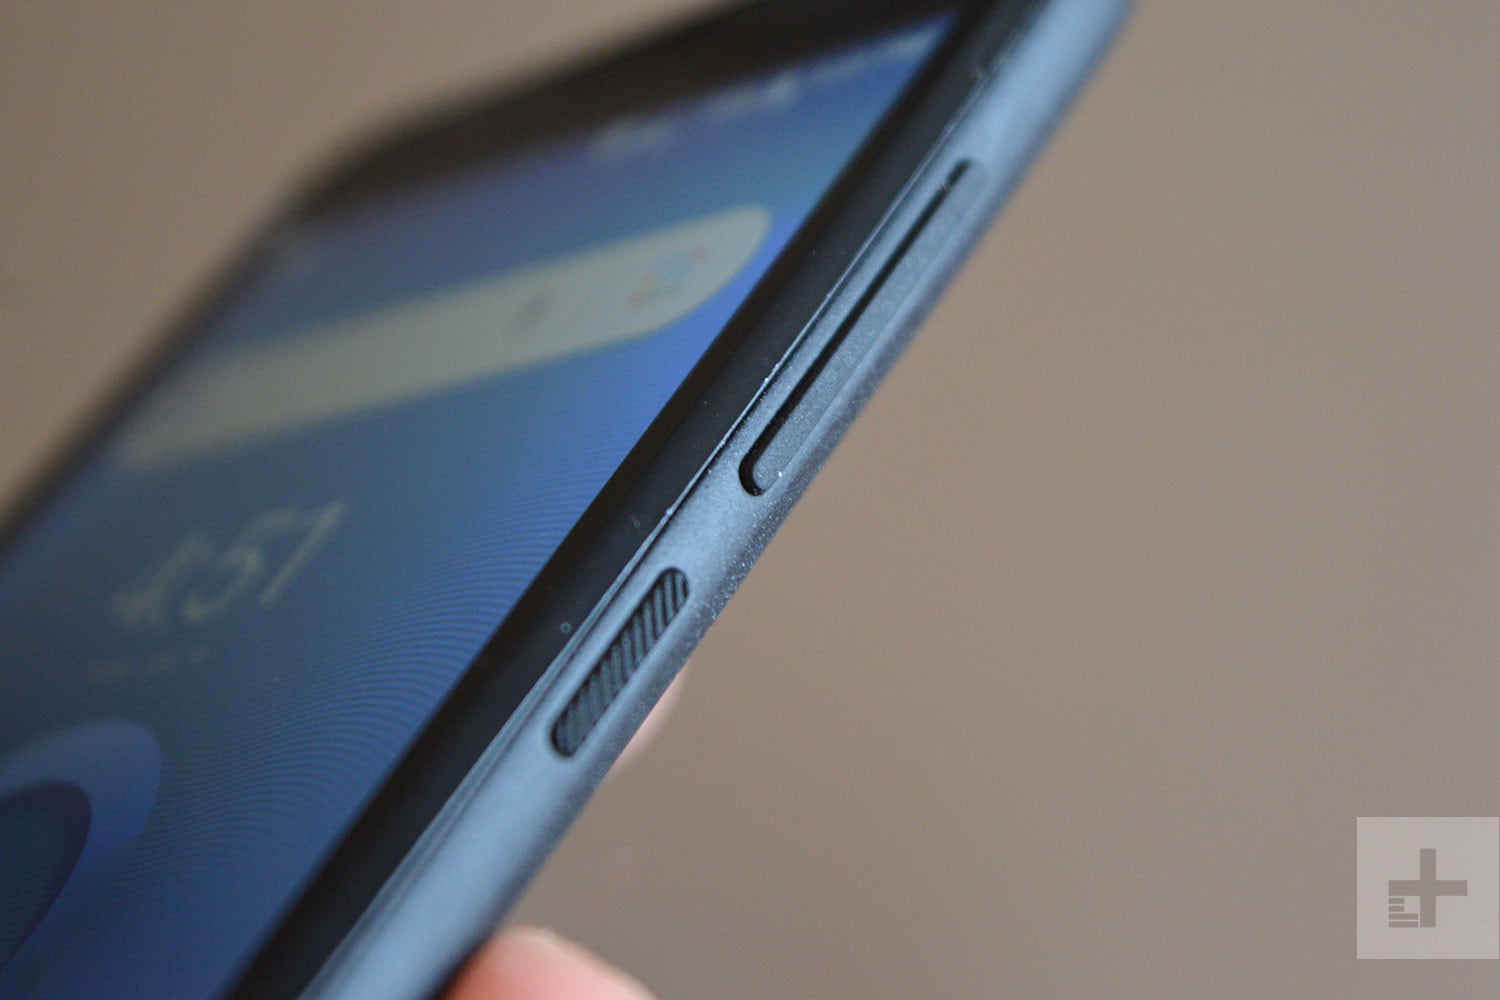 Alcatel 1X (Android Go) Review: Cheap but Flawed | Digital Trends